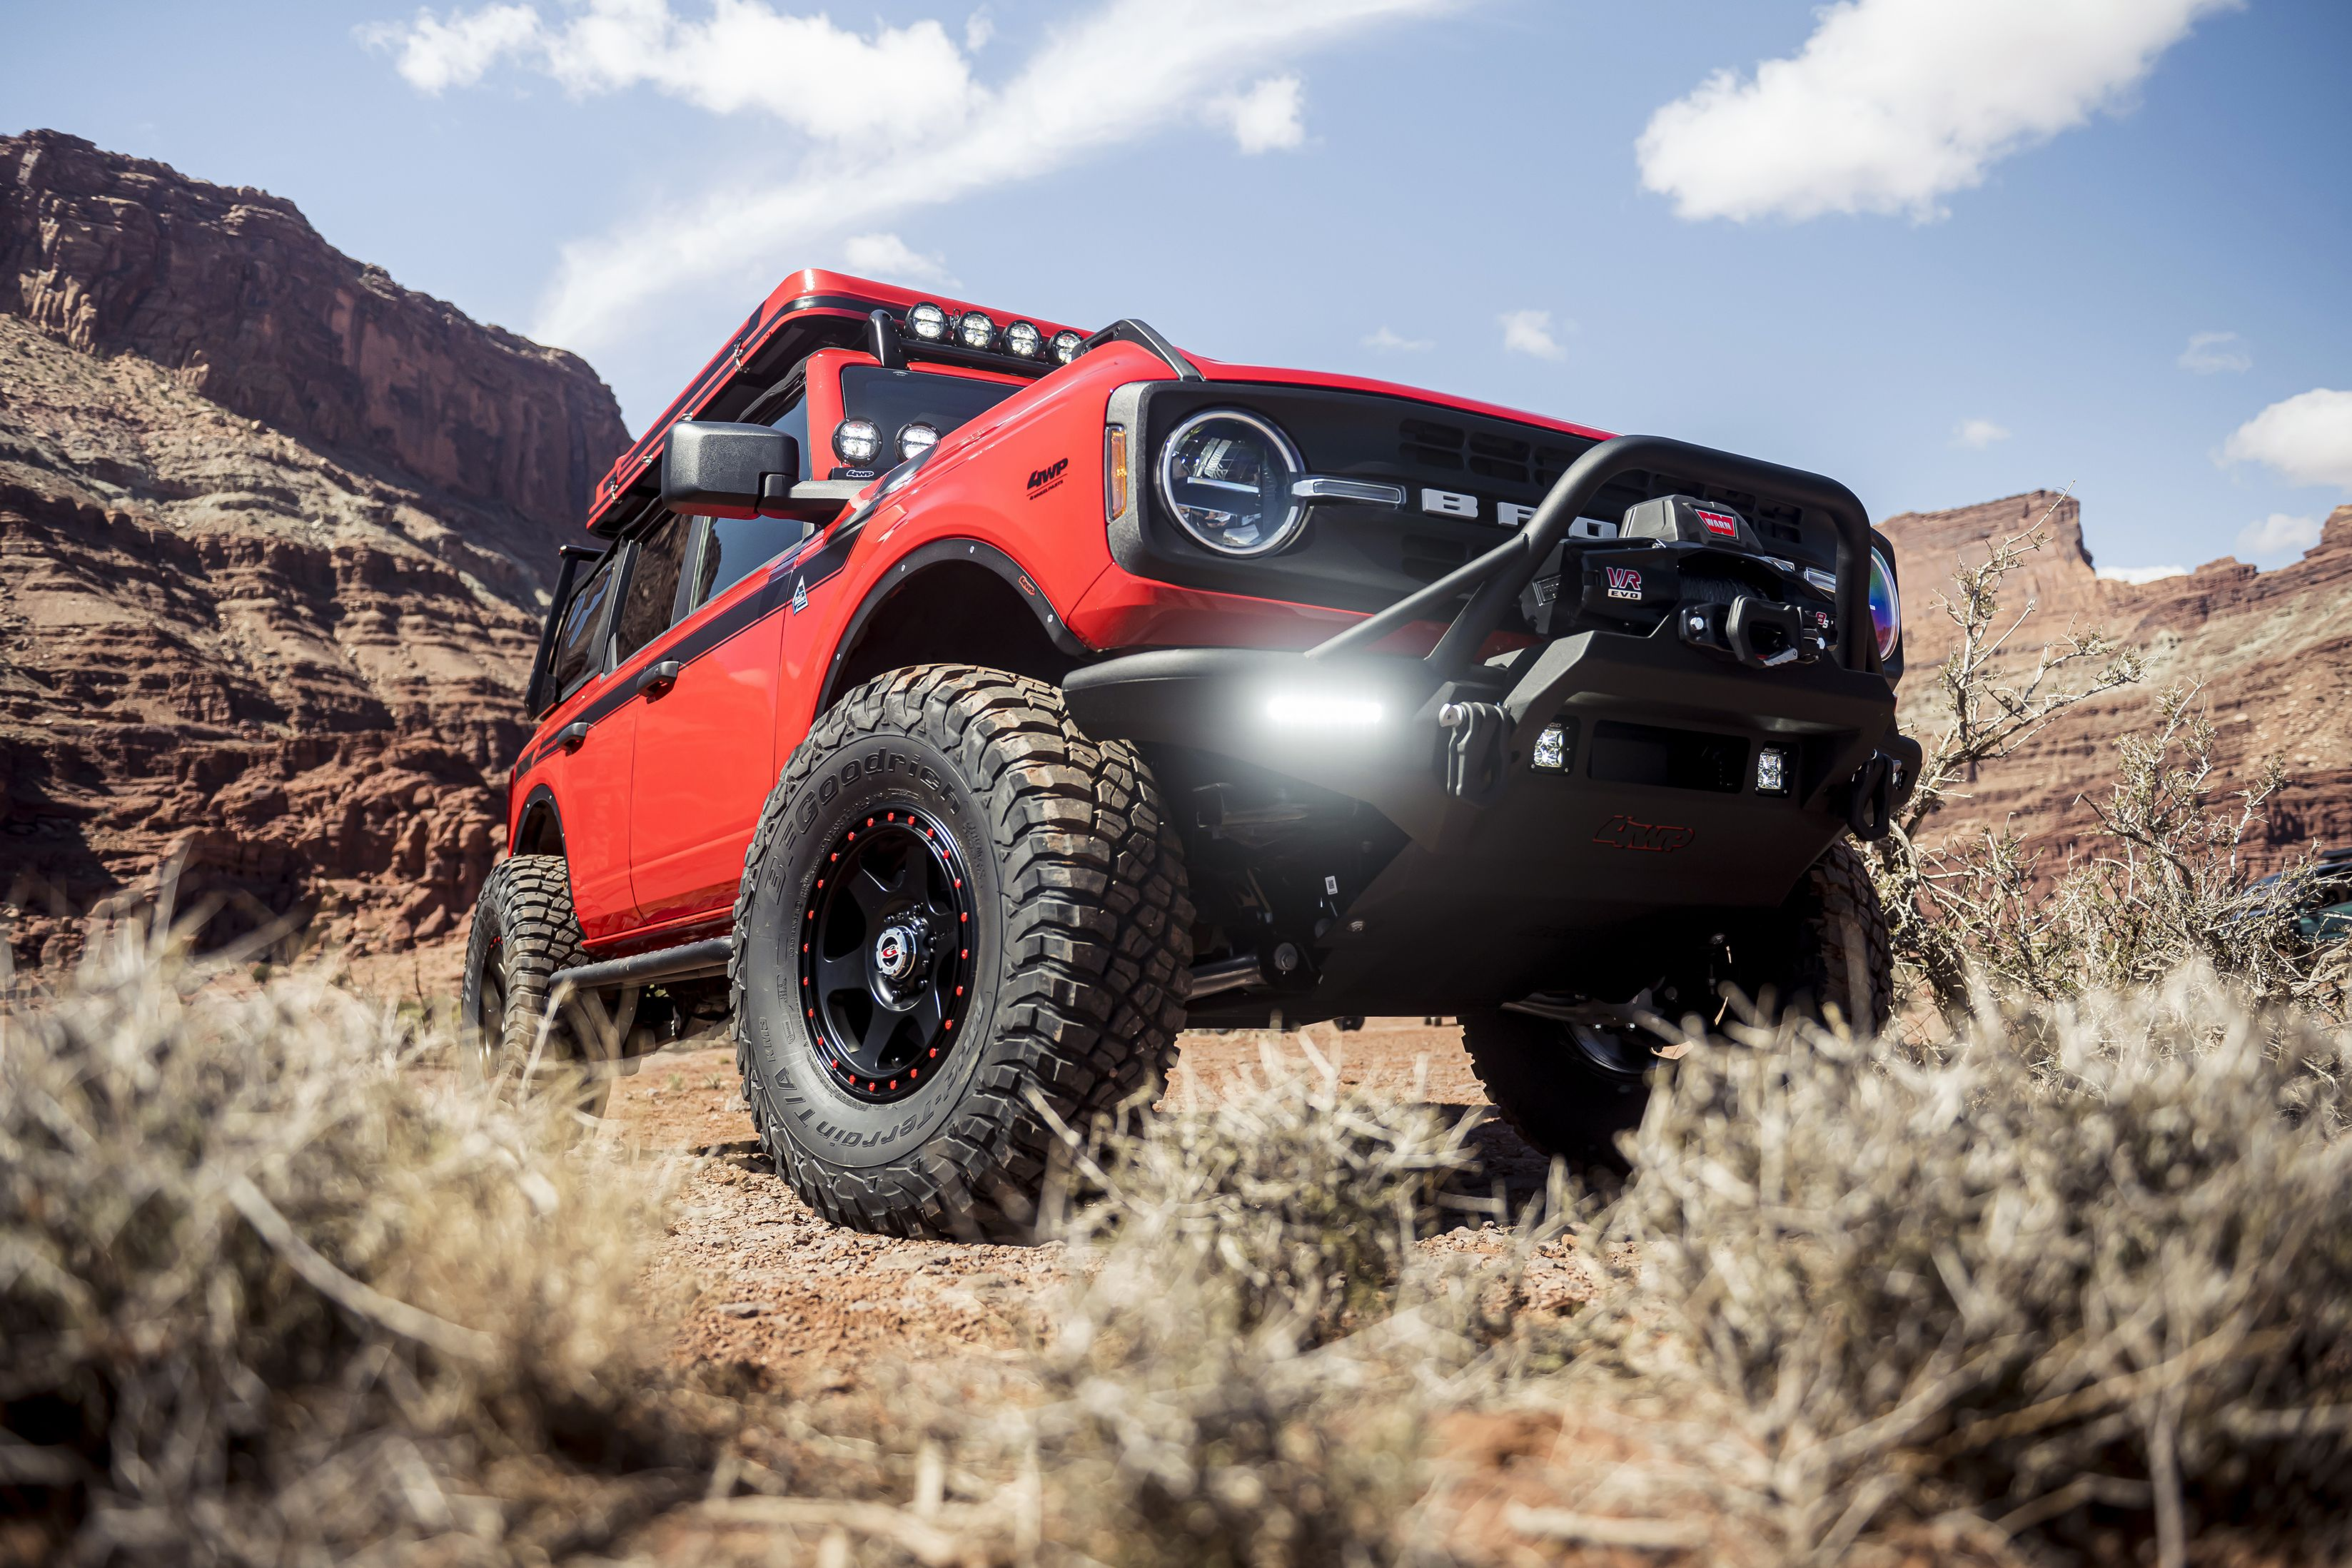 Ford CEO Jim Farley Teases All-Electric Bronco on Twitter